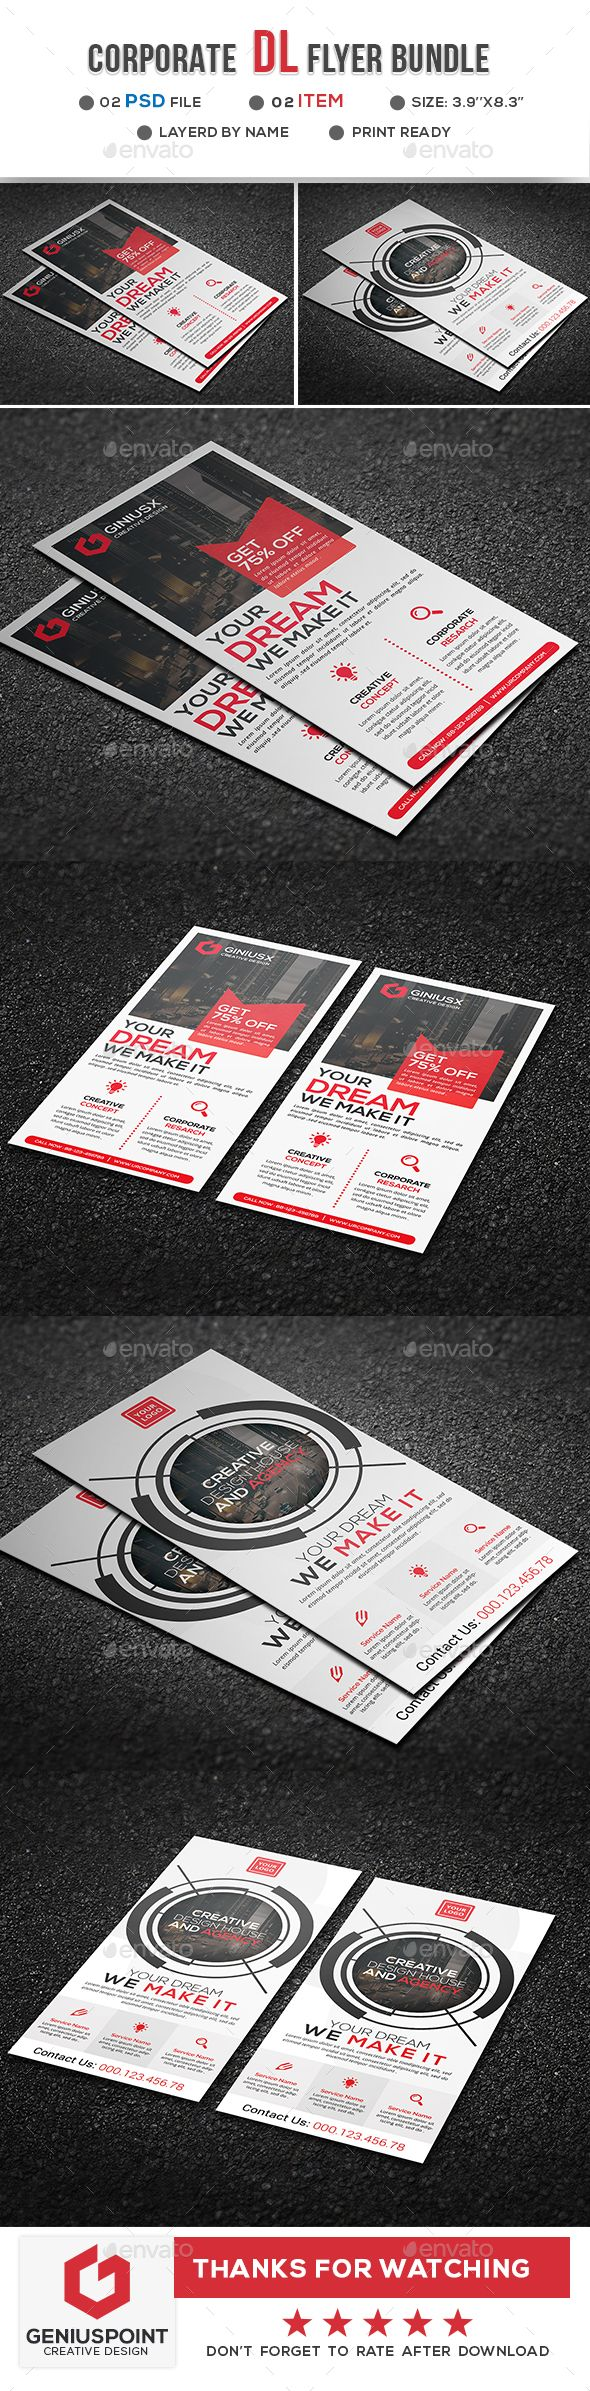 Corporate DL Flyer Template PSD Bundle